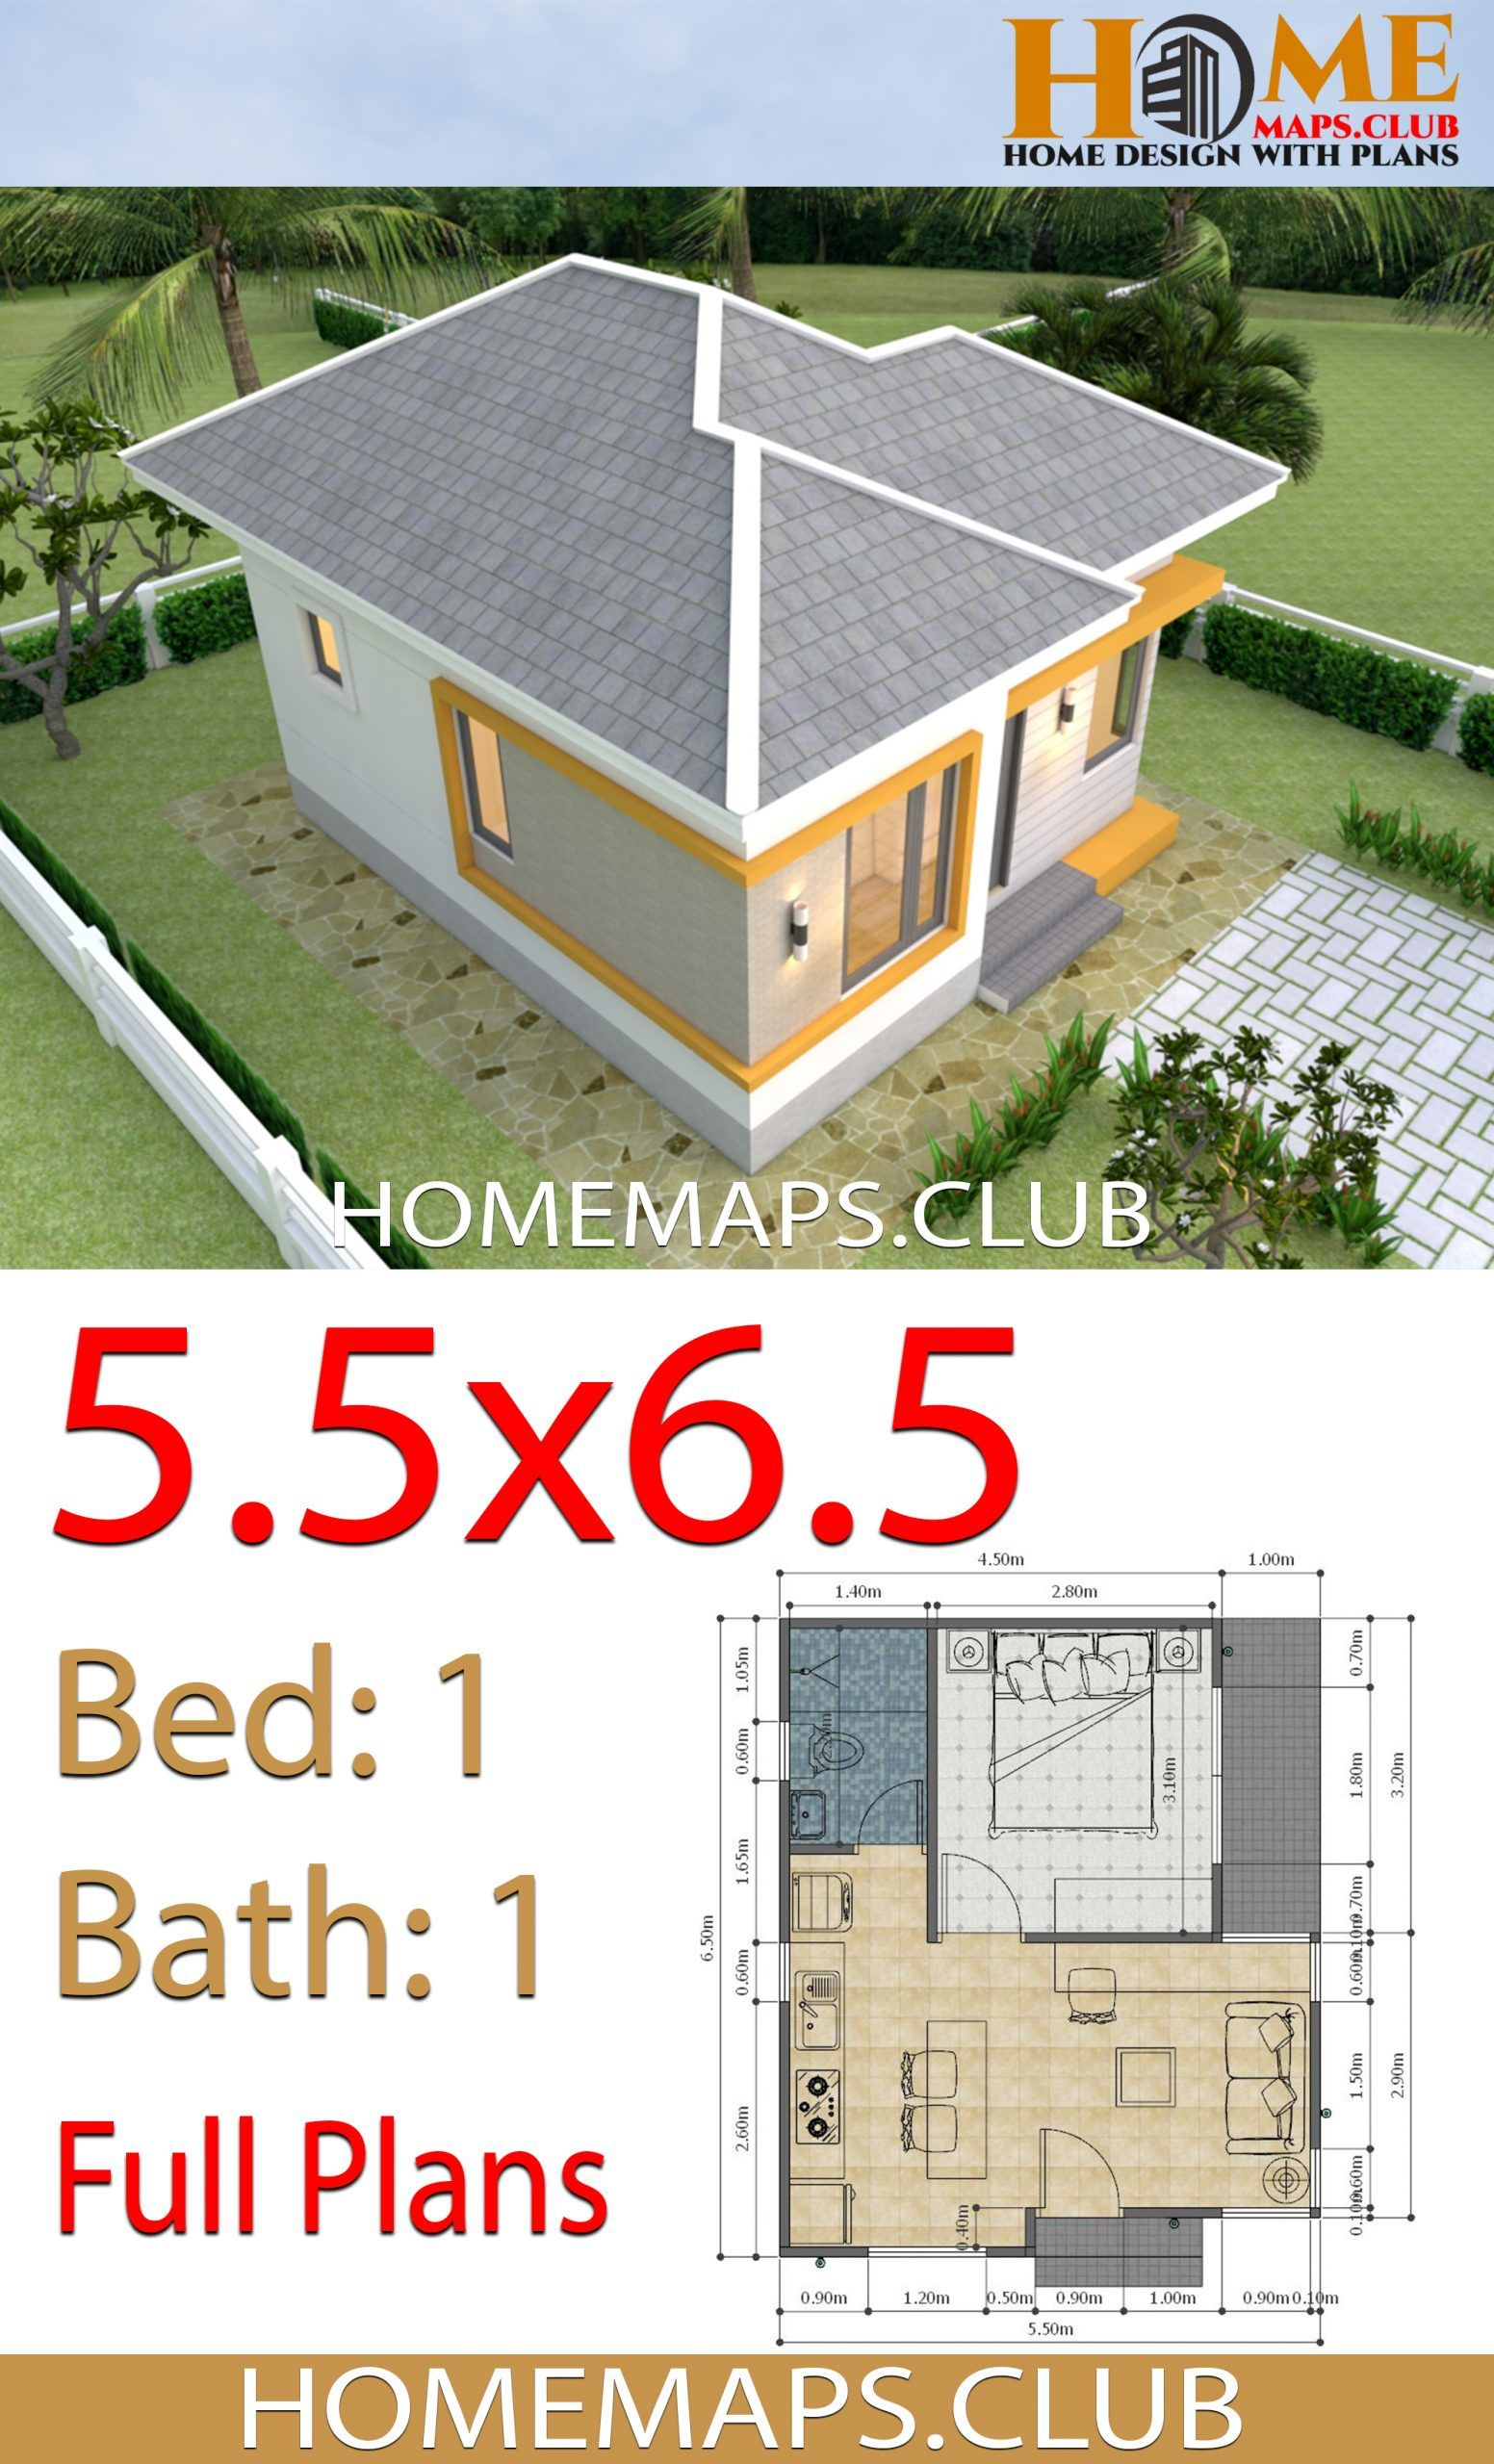 Small House Plans 5 5x6 5 With One Bedroom Hip Roof In 2020 Small House Design Plans Small House Plans House Plans